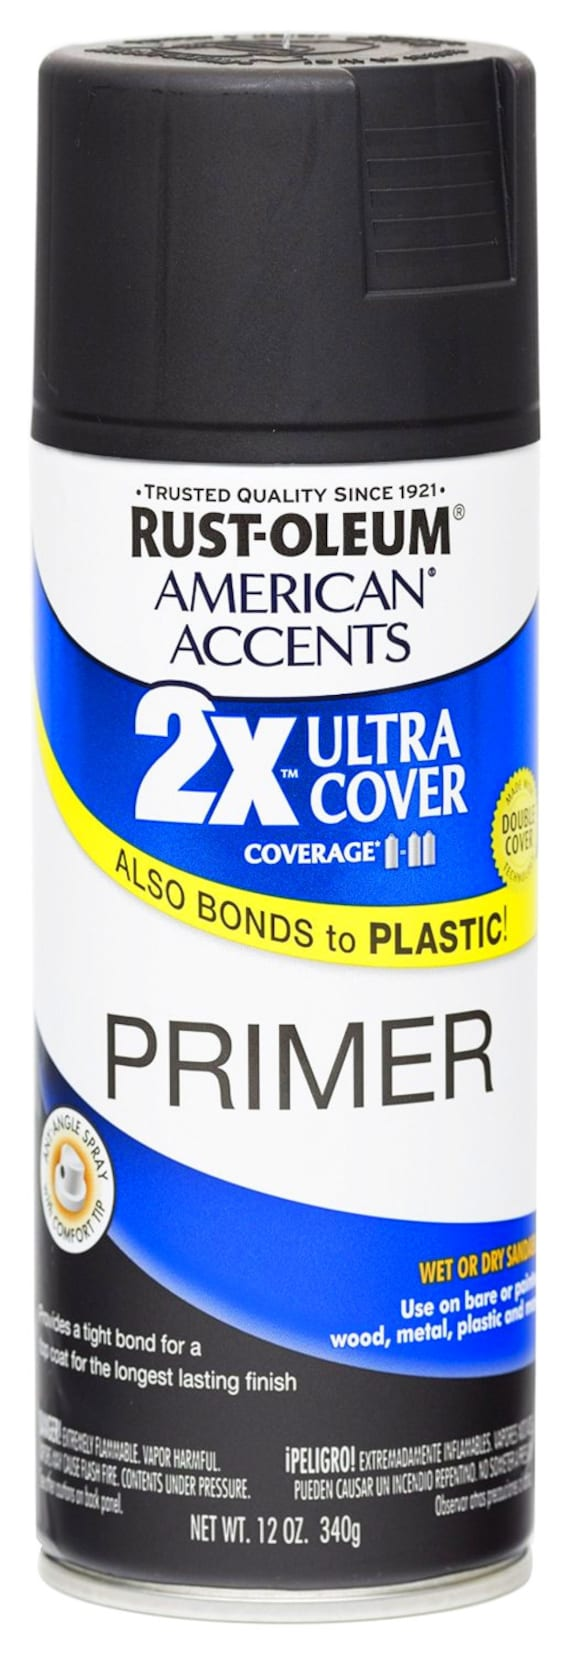 Flat Black Color Primer Ultra Cover 2x Primer Spray 12 Oz